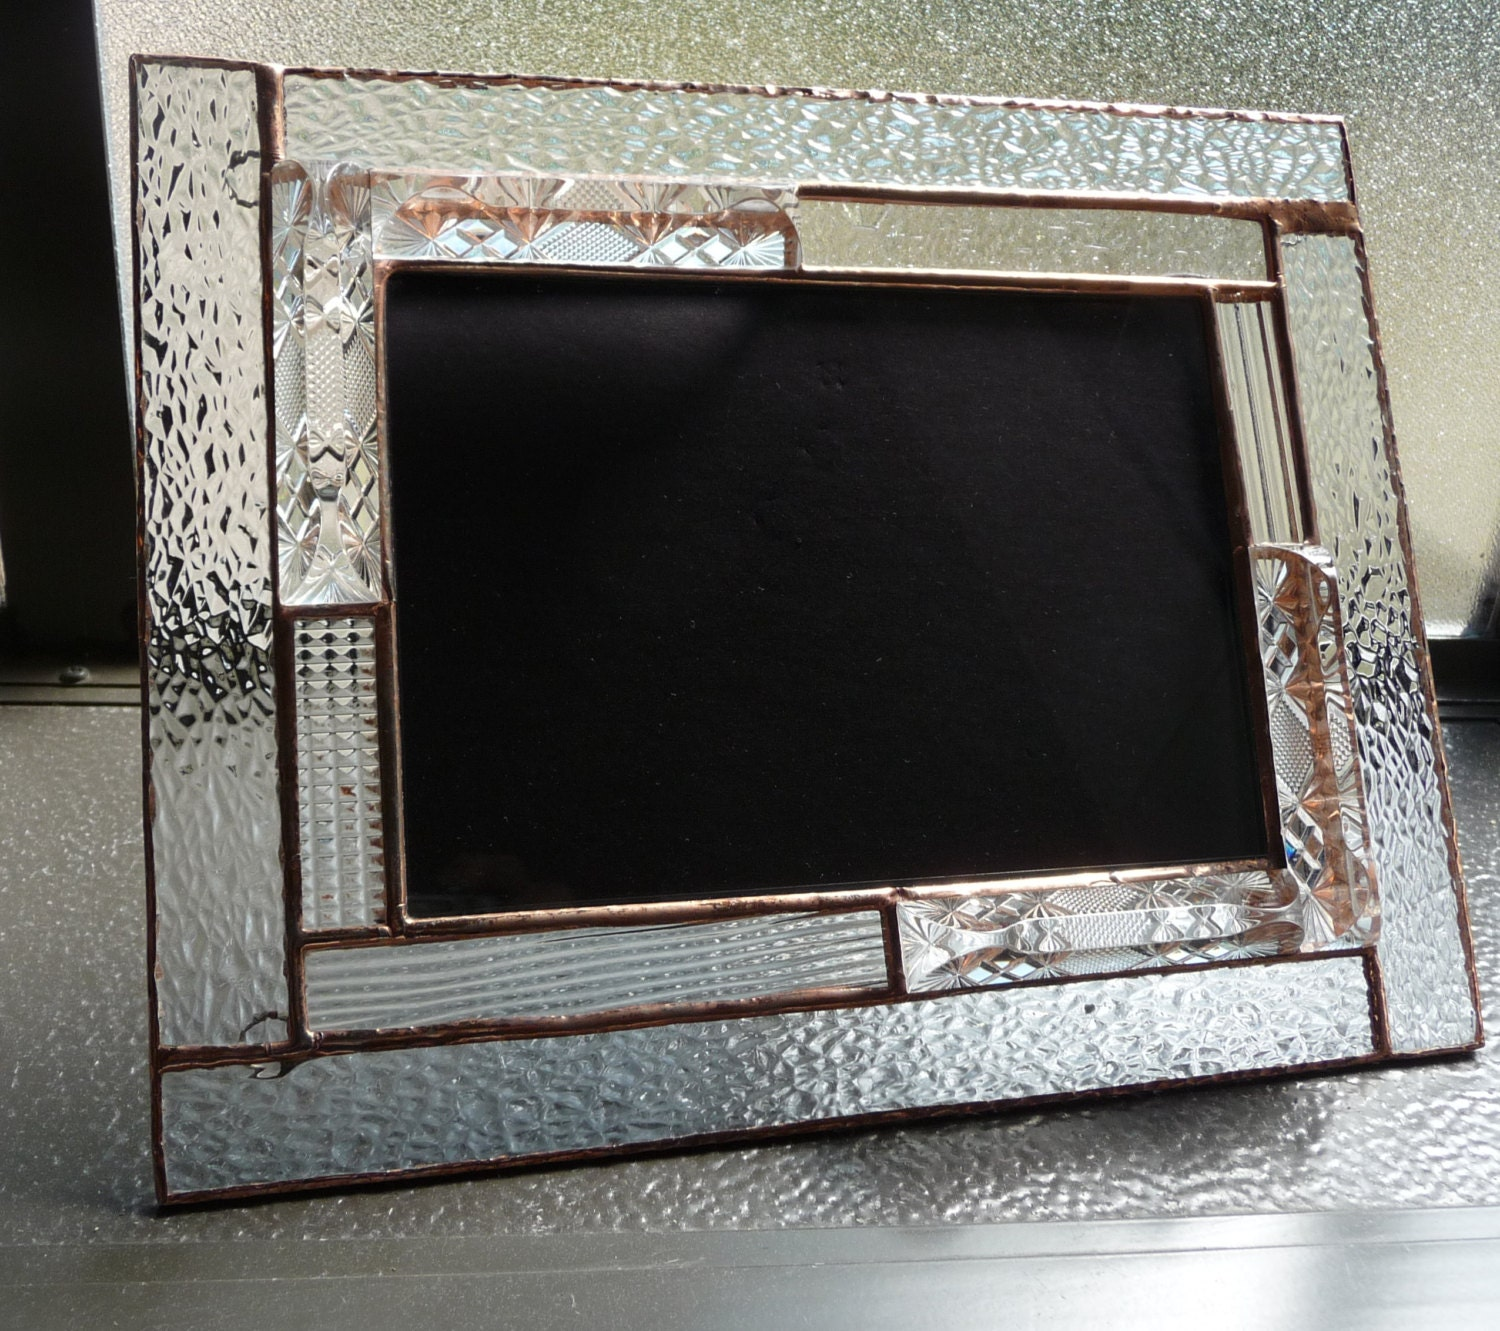 Stained glass 5 x 7 picture frame textured picture frame clear stained glass 5 x 7 picture frame textured picture frame clear multifaceted frame hammered glass glue chip stained glass jeuxipadfo Images